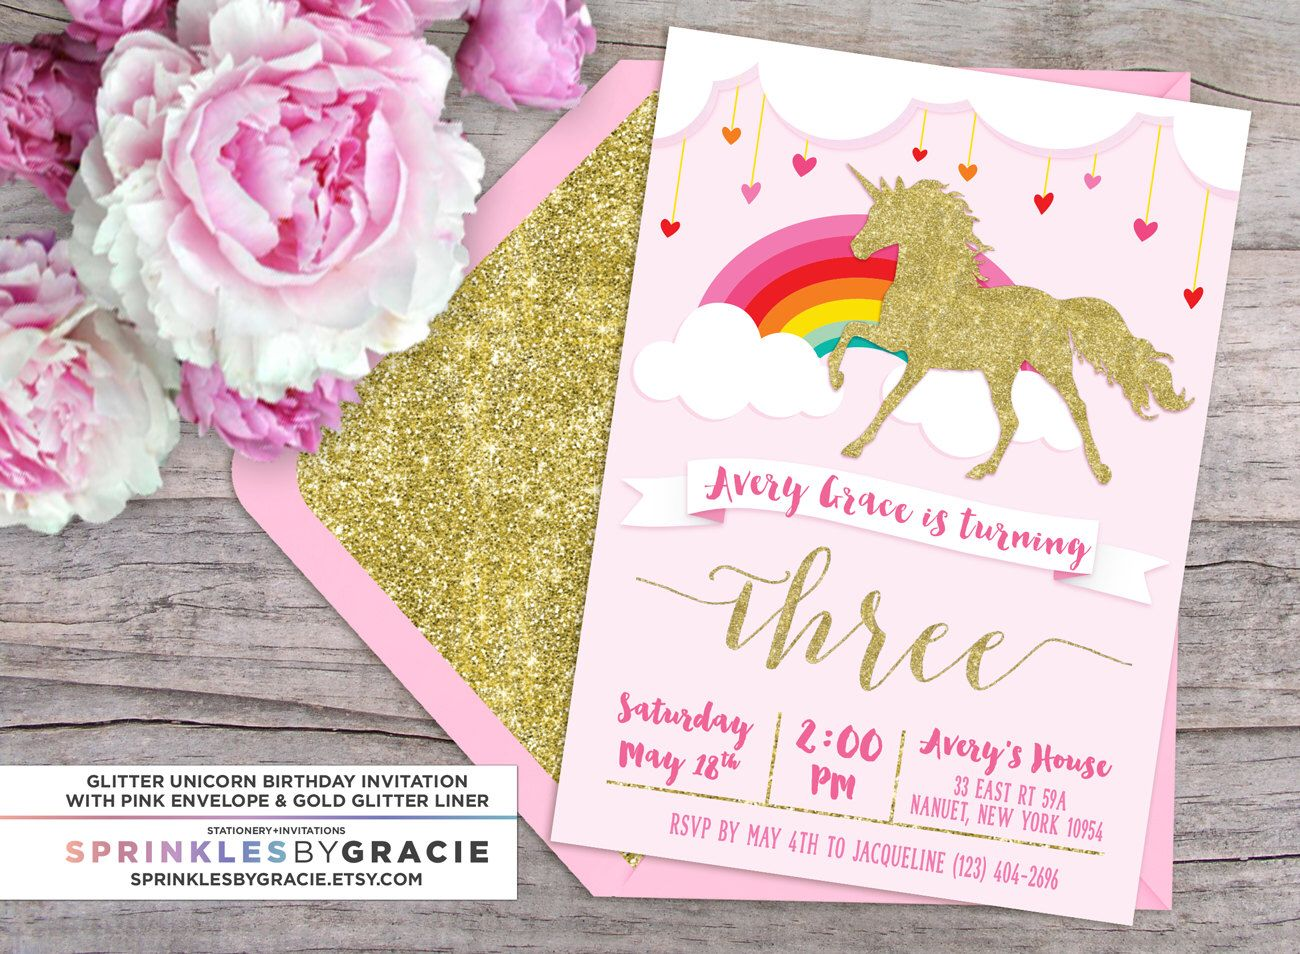 Magical Glitter Unicorn Birthday Party Invitation with Free Shipping ...